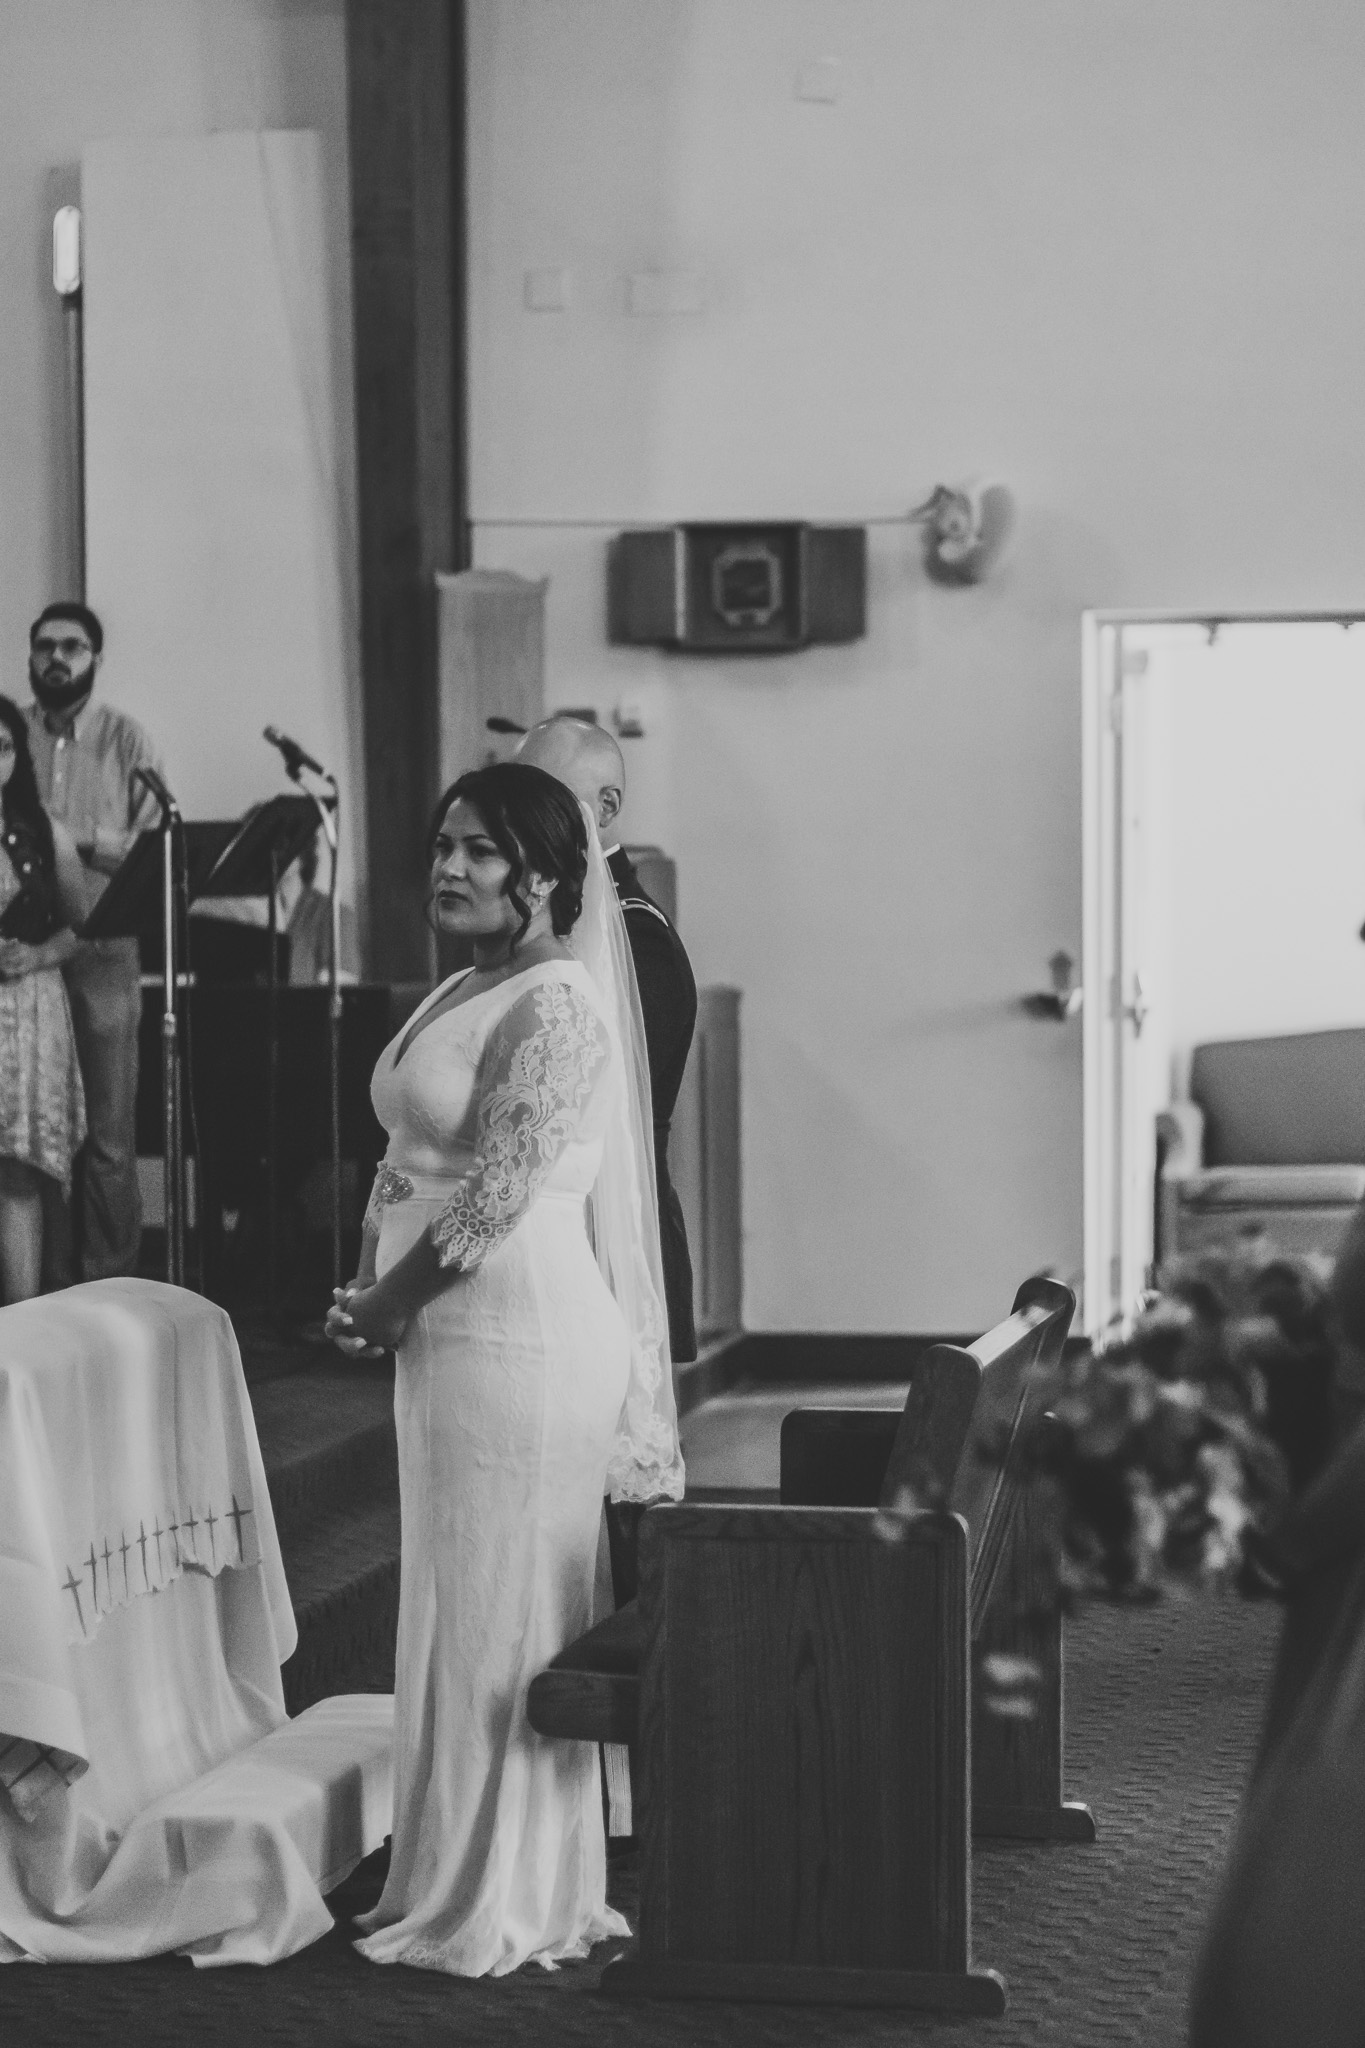 Black and White Photo of Bride